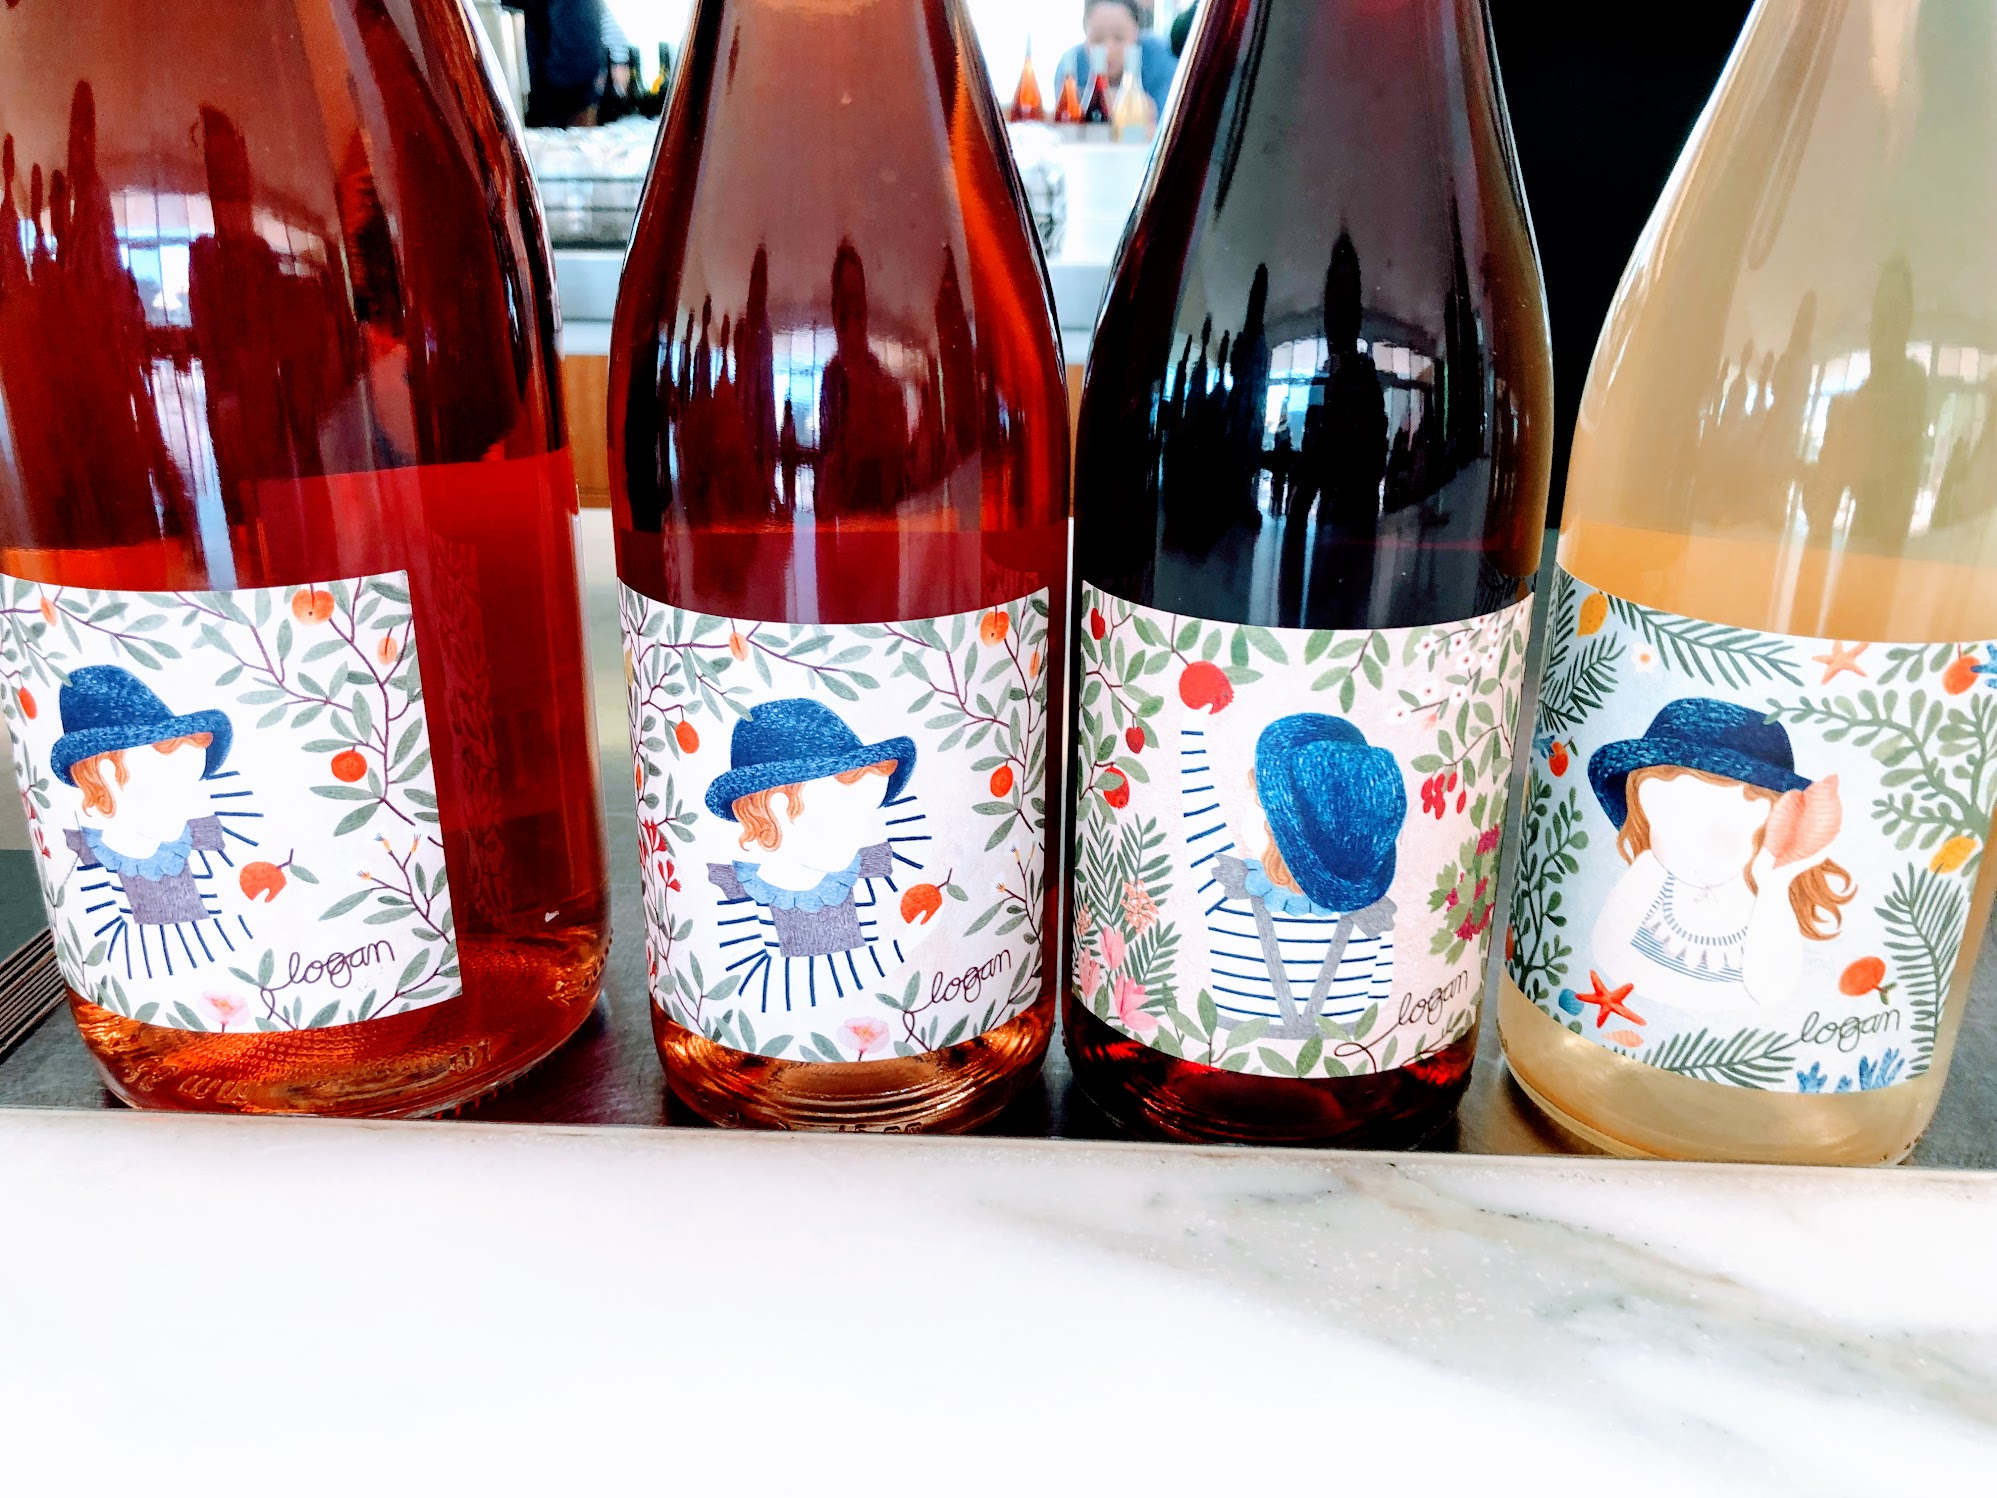 4 bottles of Clementine orange wines from Logan wines